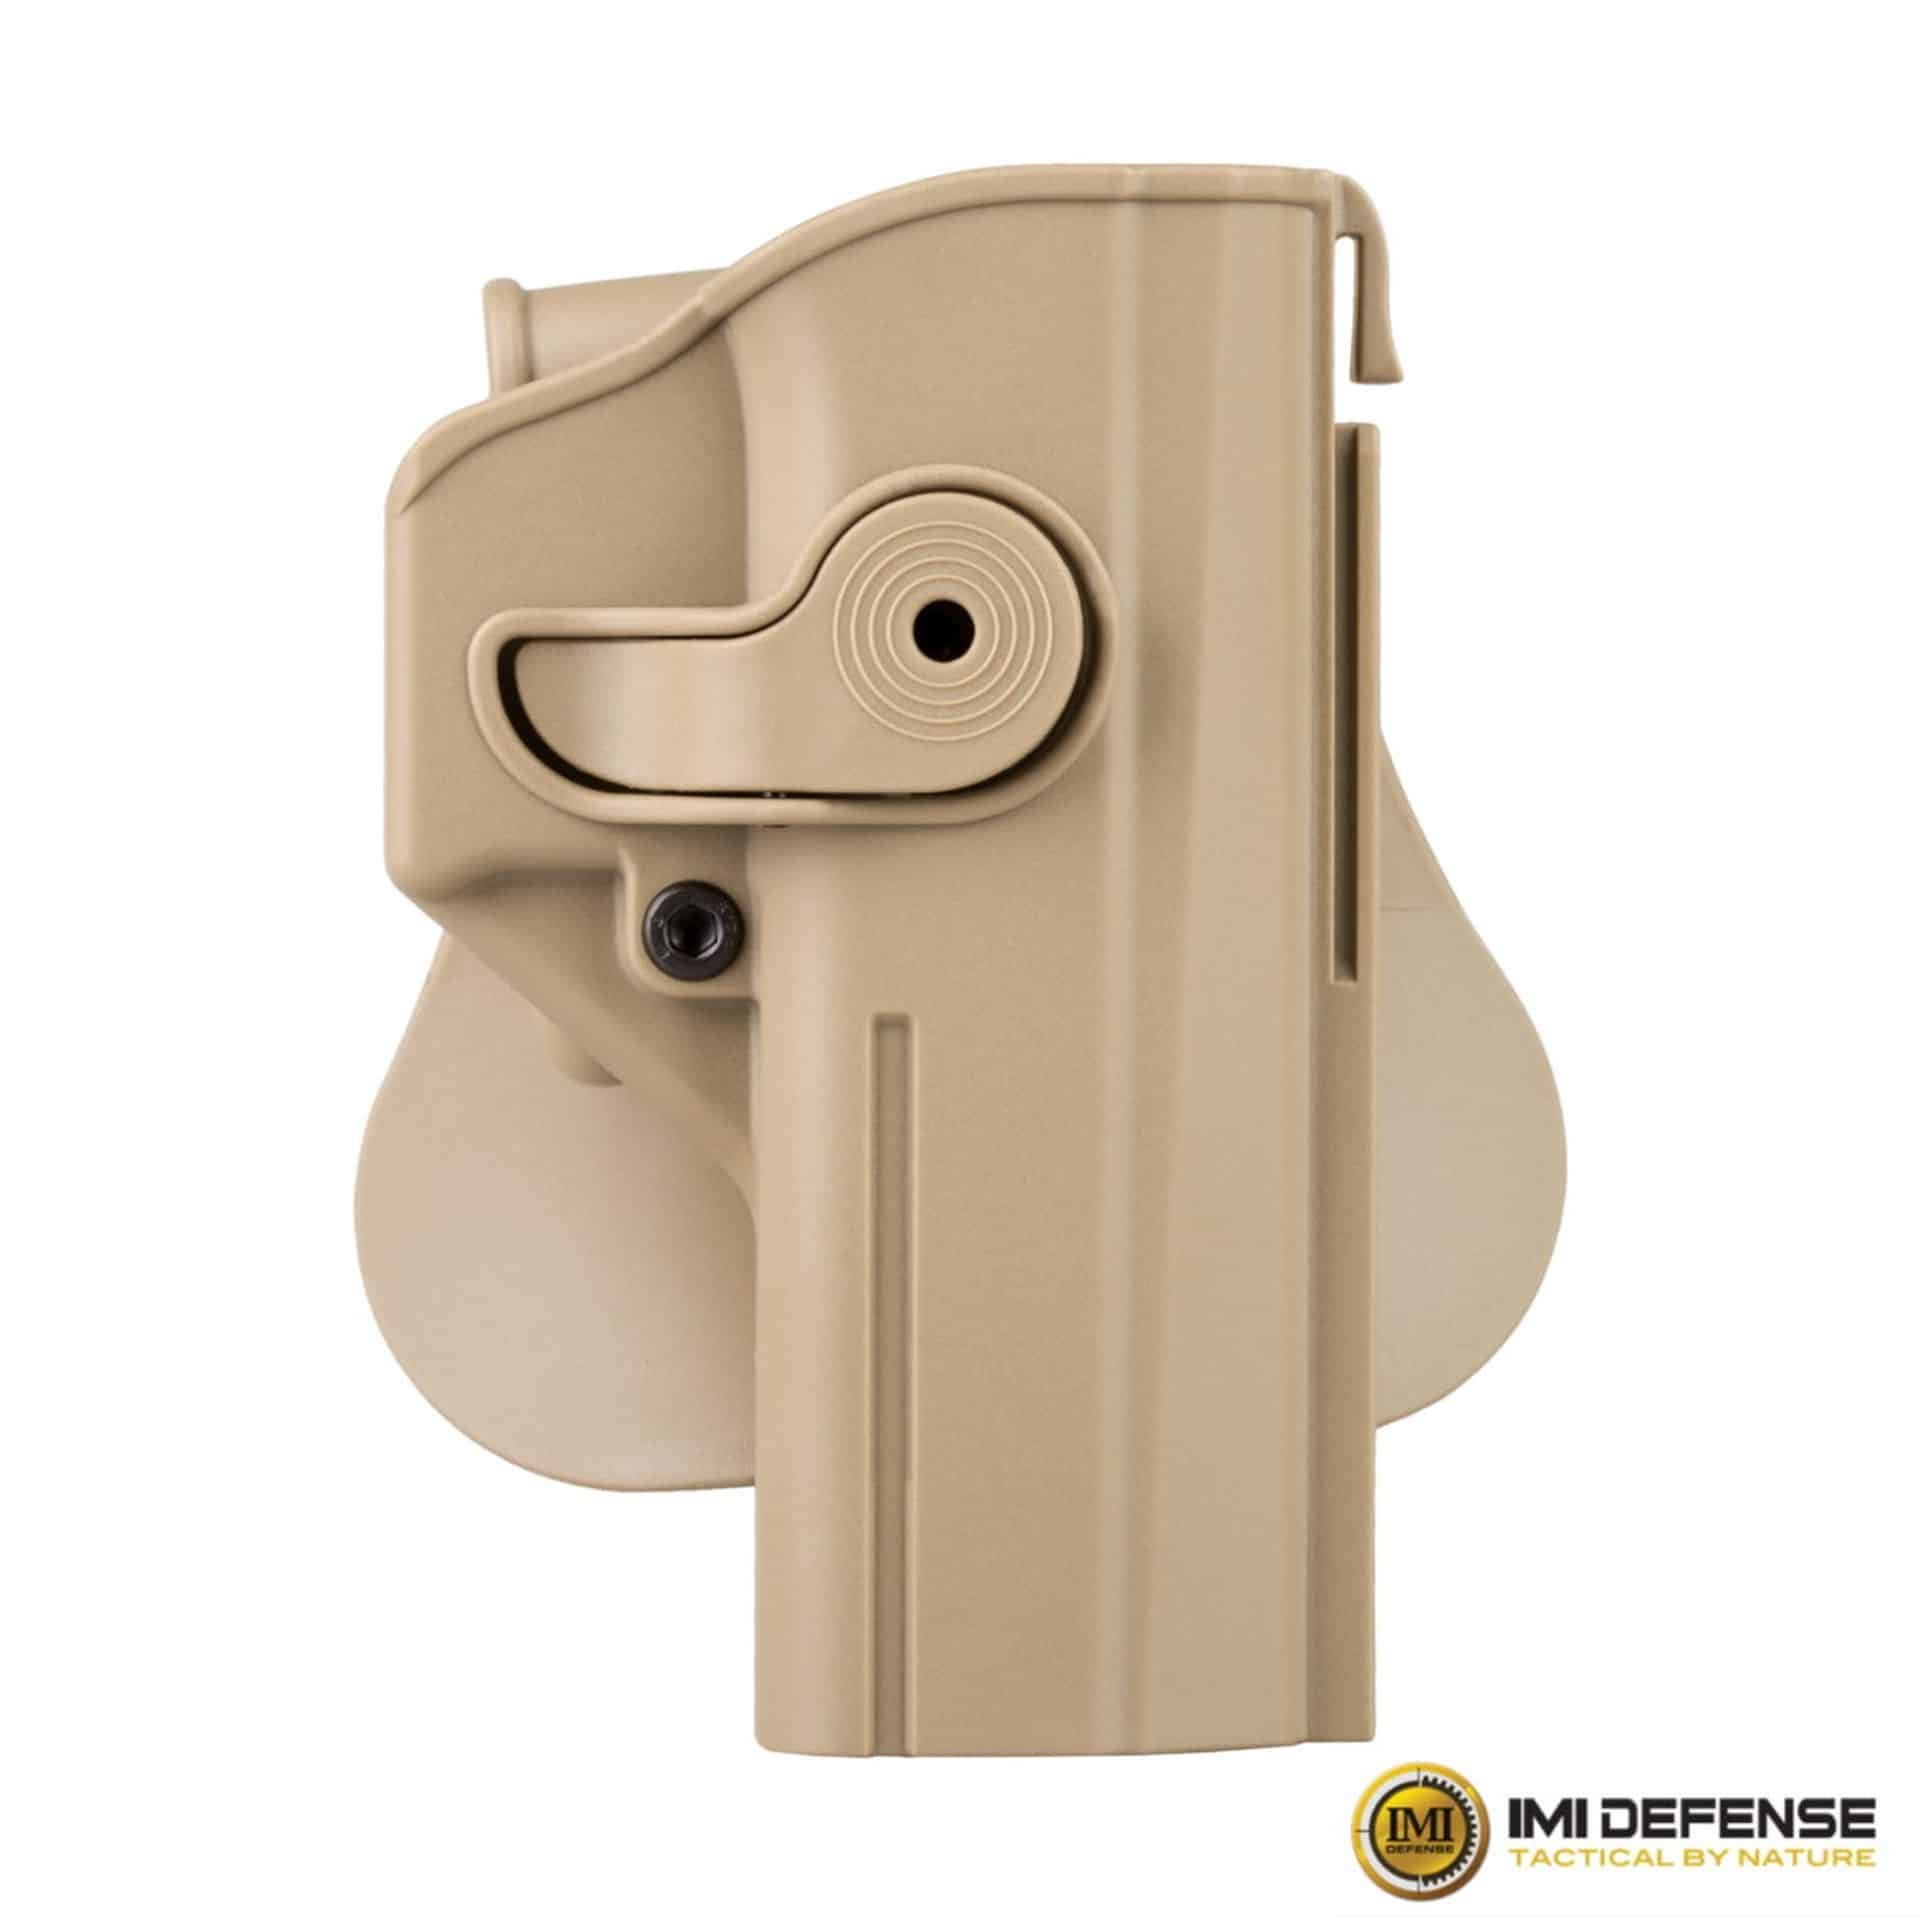 IMI-Z1450 - Level 2 Holster for CZ P-09, Shadow 2